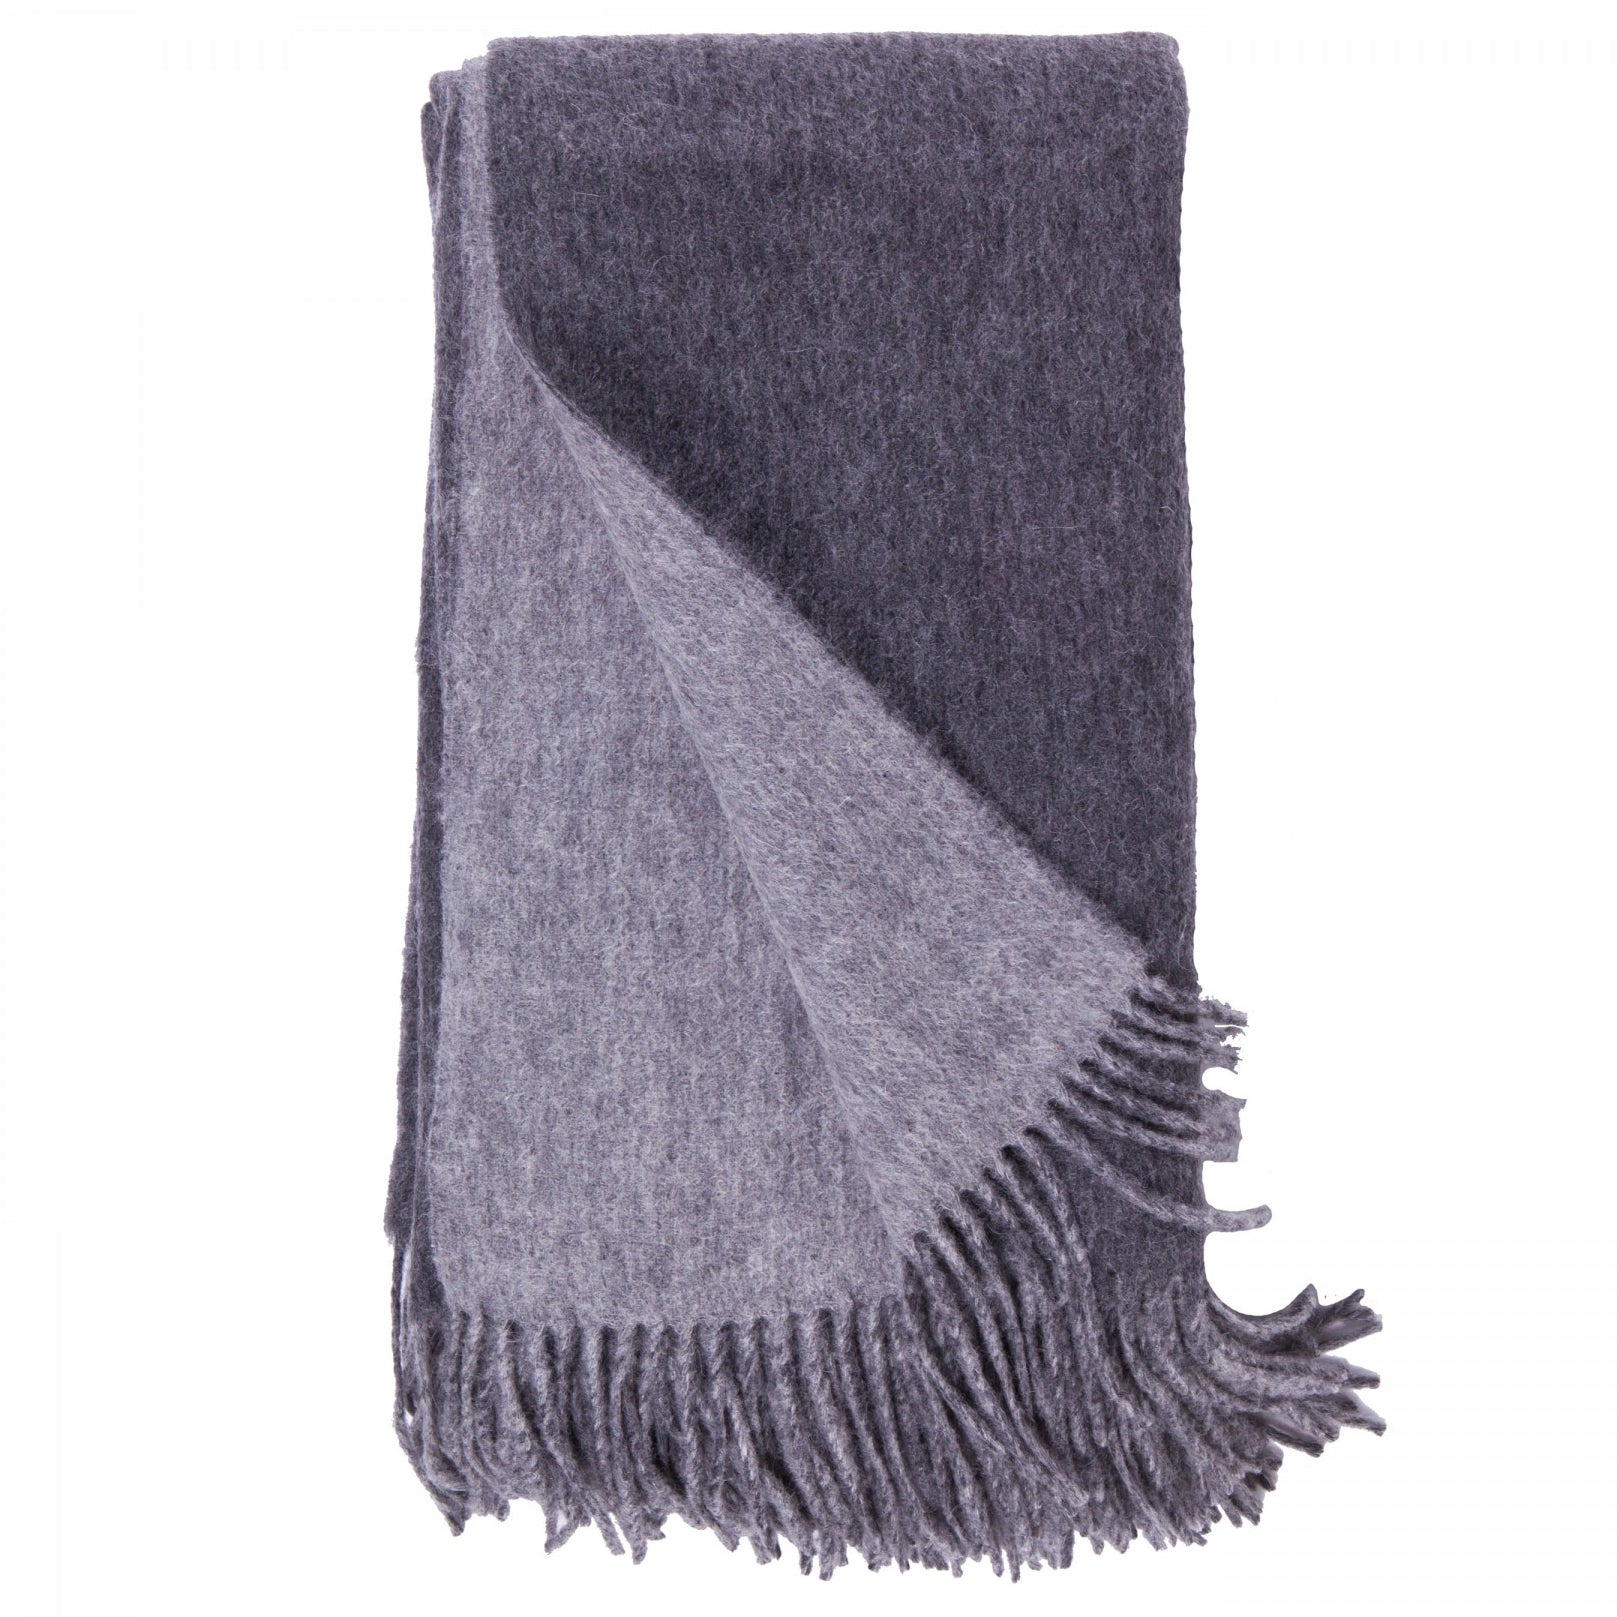 Alashan Merino / Cashmere Double Faced Throw - Charcoal/Ash